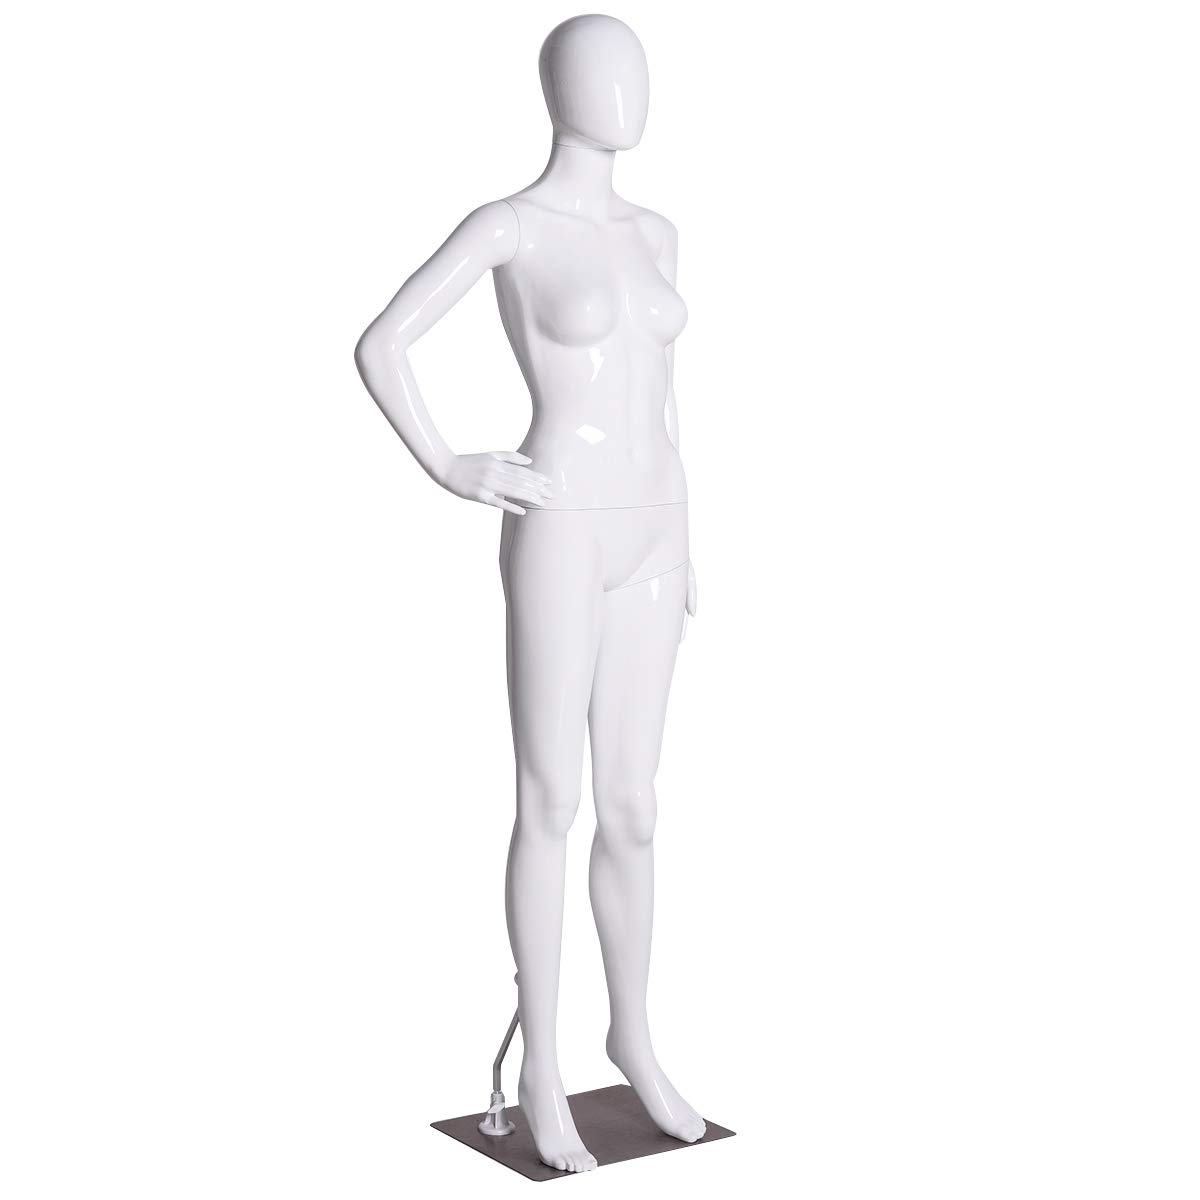 Giantex Female Mannequin Stand Dress Form Full Body Plastic Display Head Turns Dress Form (White, One Hand On Hip Mannequin)